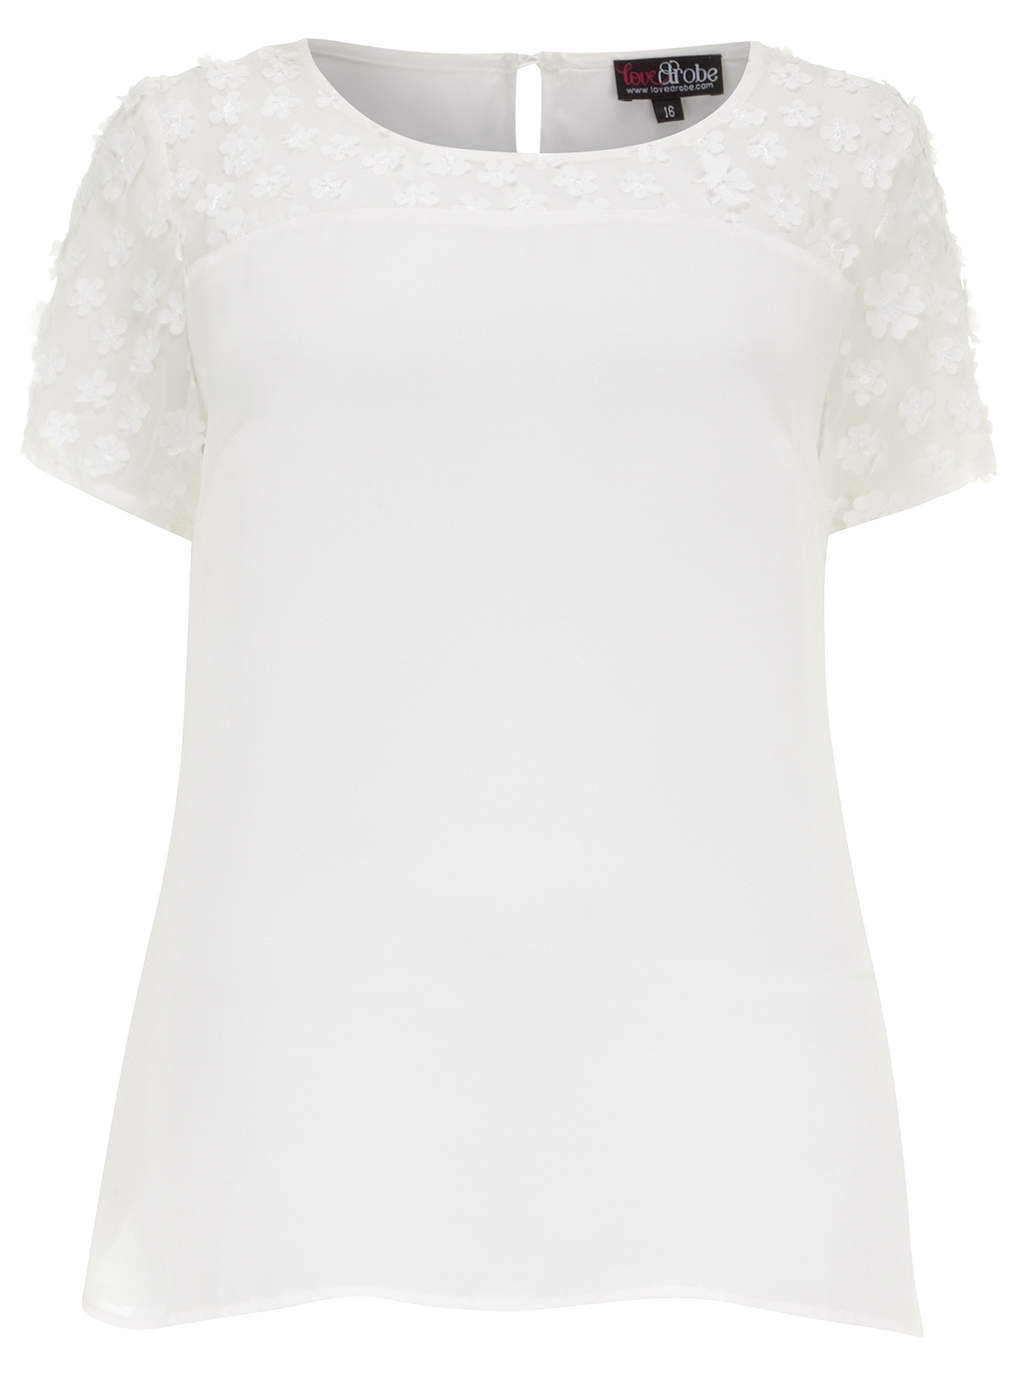 Lovedrobe Ivory Flower Trim Top - neckline: round neck; pattern: plain; style: t-shirt; predominant colour: white; occasions: casual, creative work; length: standard; fibres: polyester/polyamide - 100%; fit: straight cut; shoulder detail: added shoulder detail; sleeve length: short sleeve; sleeve style: standard; texture group: crepes; pattern type: fabric; season: s/s 2014